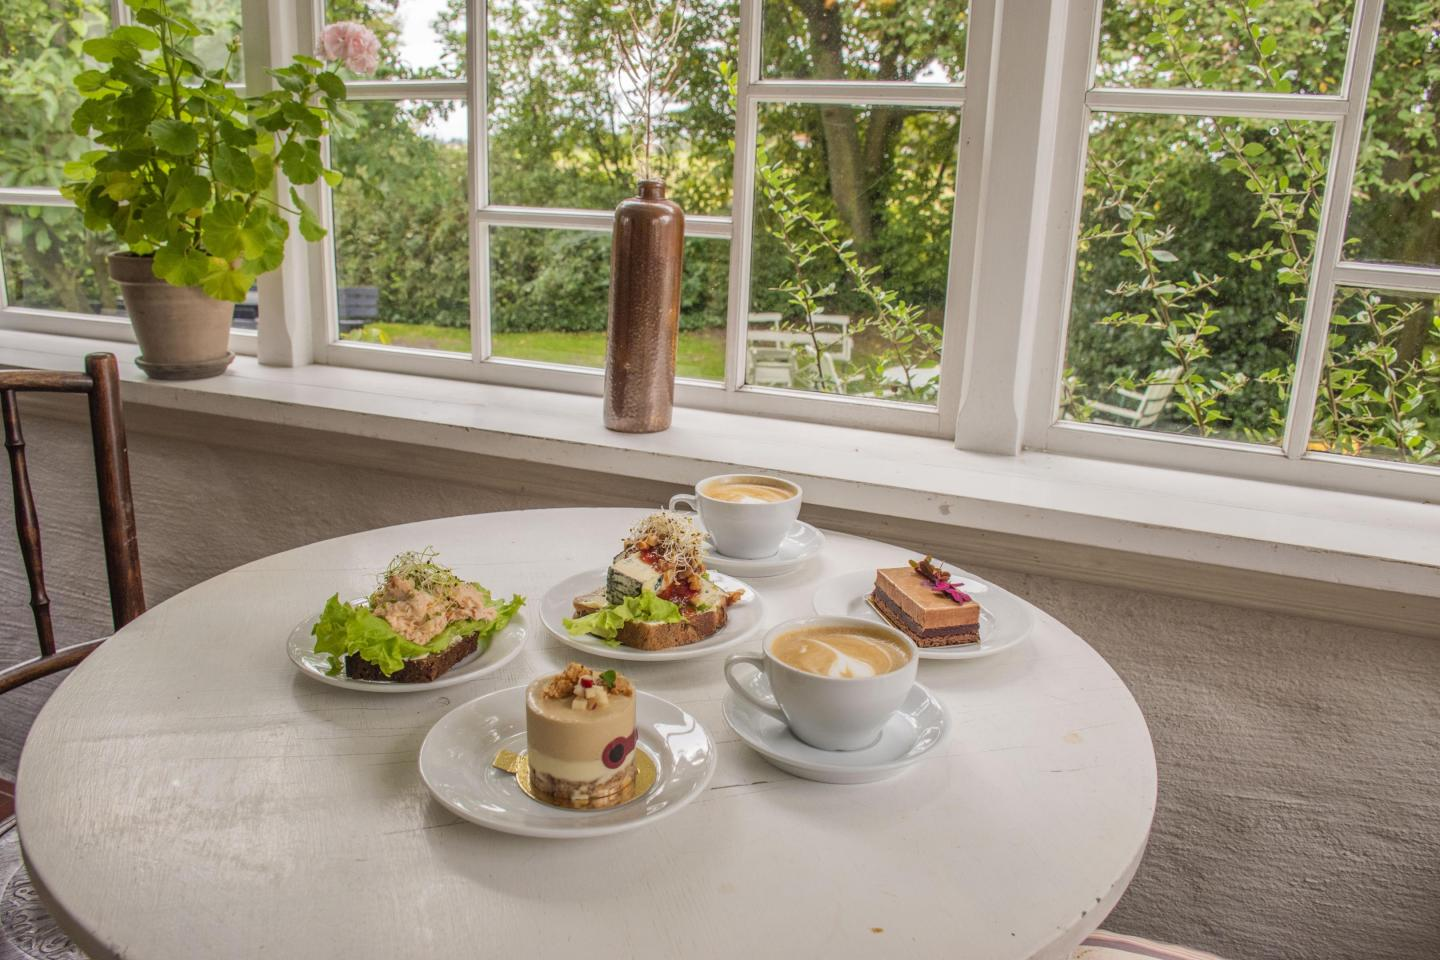 Sandwiches, pastries and coffee placed a round  with a view of a green and lush garden